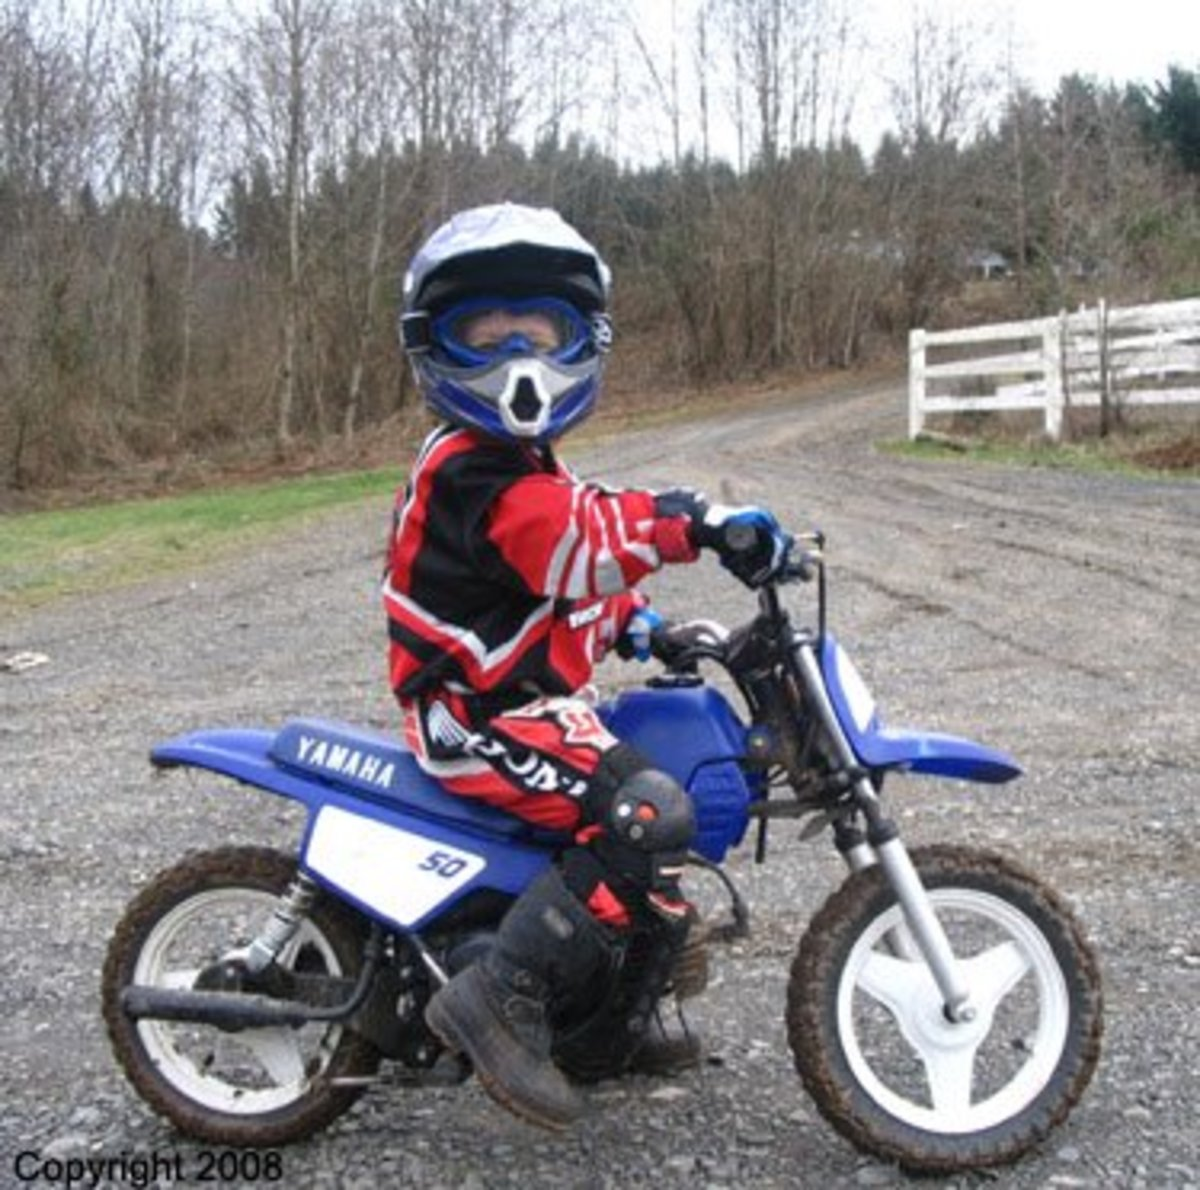 Which Motorcycle Should I Buy for My 3- to 7-Year-Old's